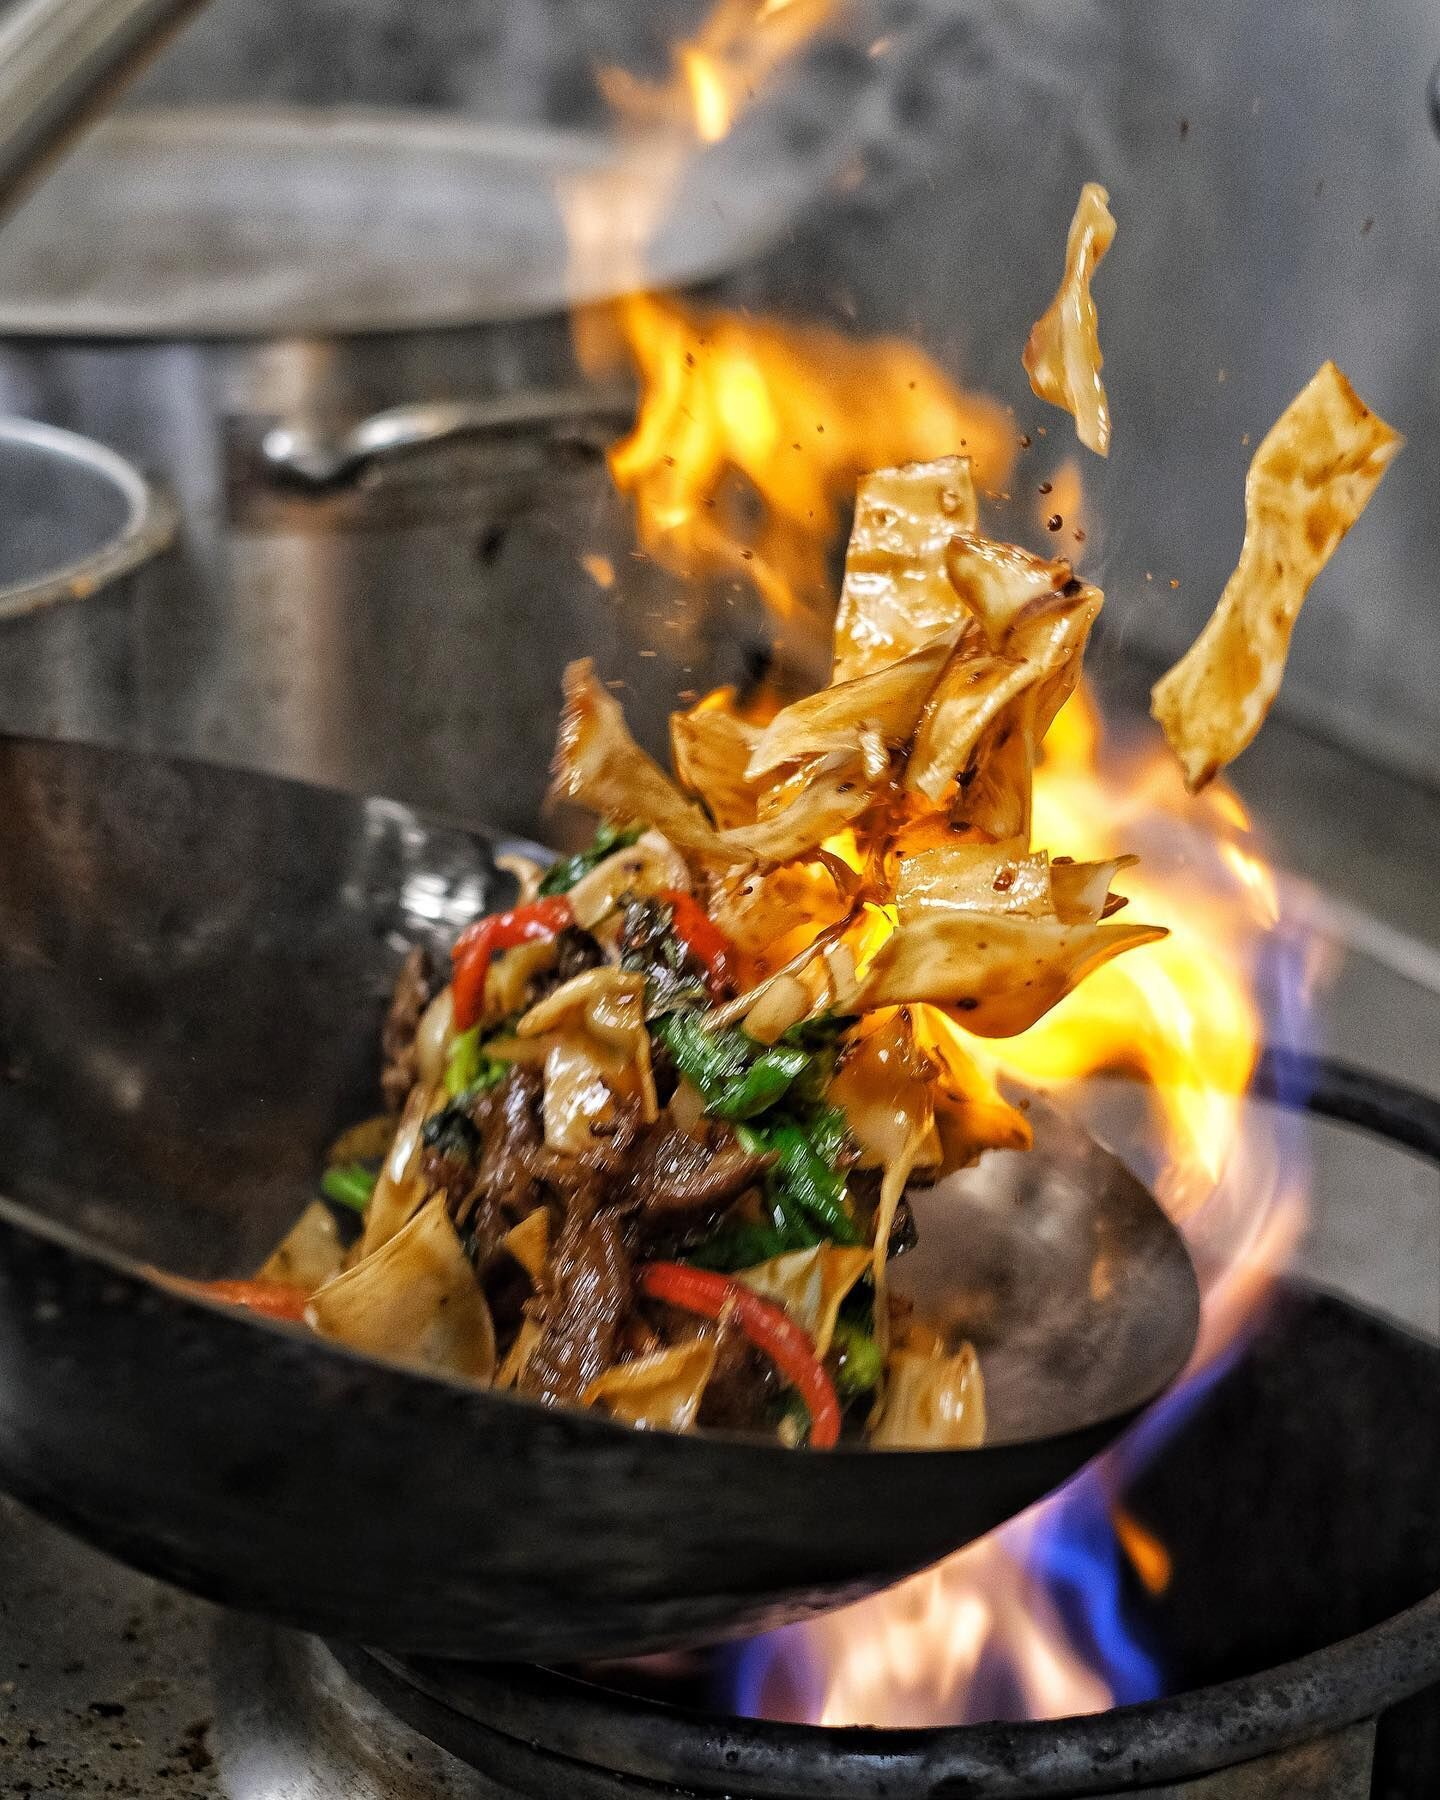 I Mean Our Drunken Beef Noodles Are No Joke The Wok Is Fired Up And Ready To Serve You The Best Chinese Delivery In 2020 Best Chinese Food Chinese Food Delivery Food